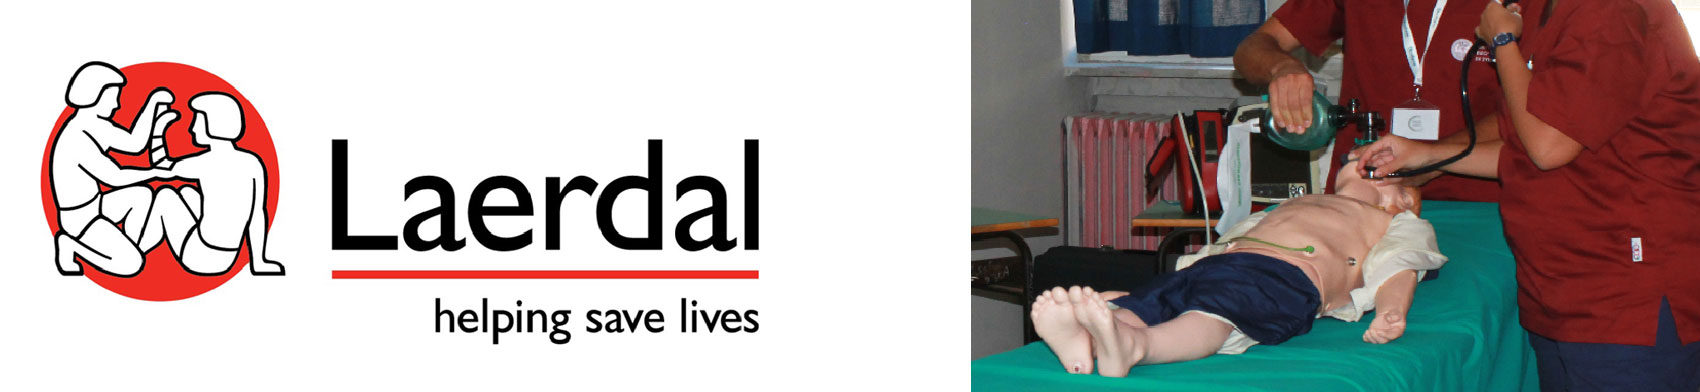 La Laerdal Medical AS e SimLab